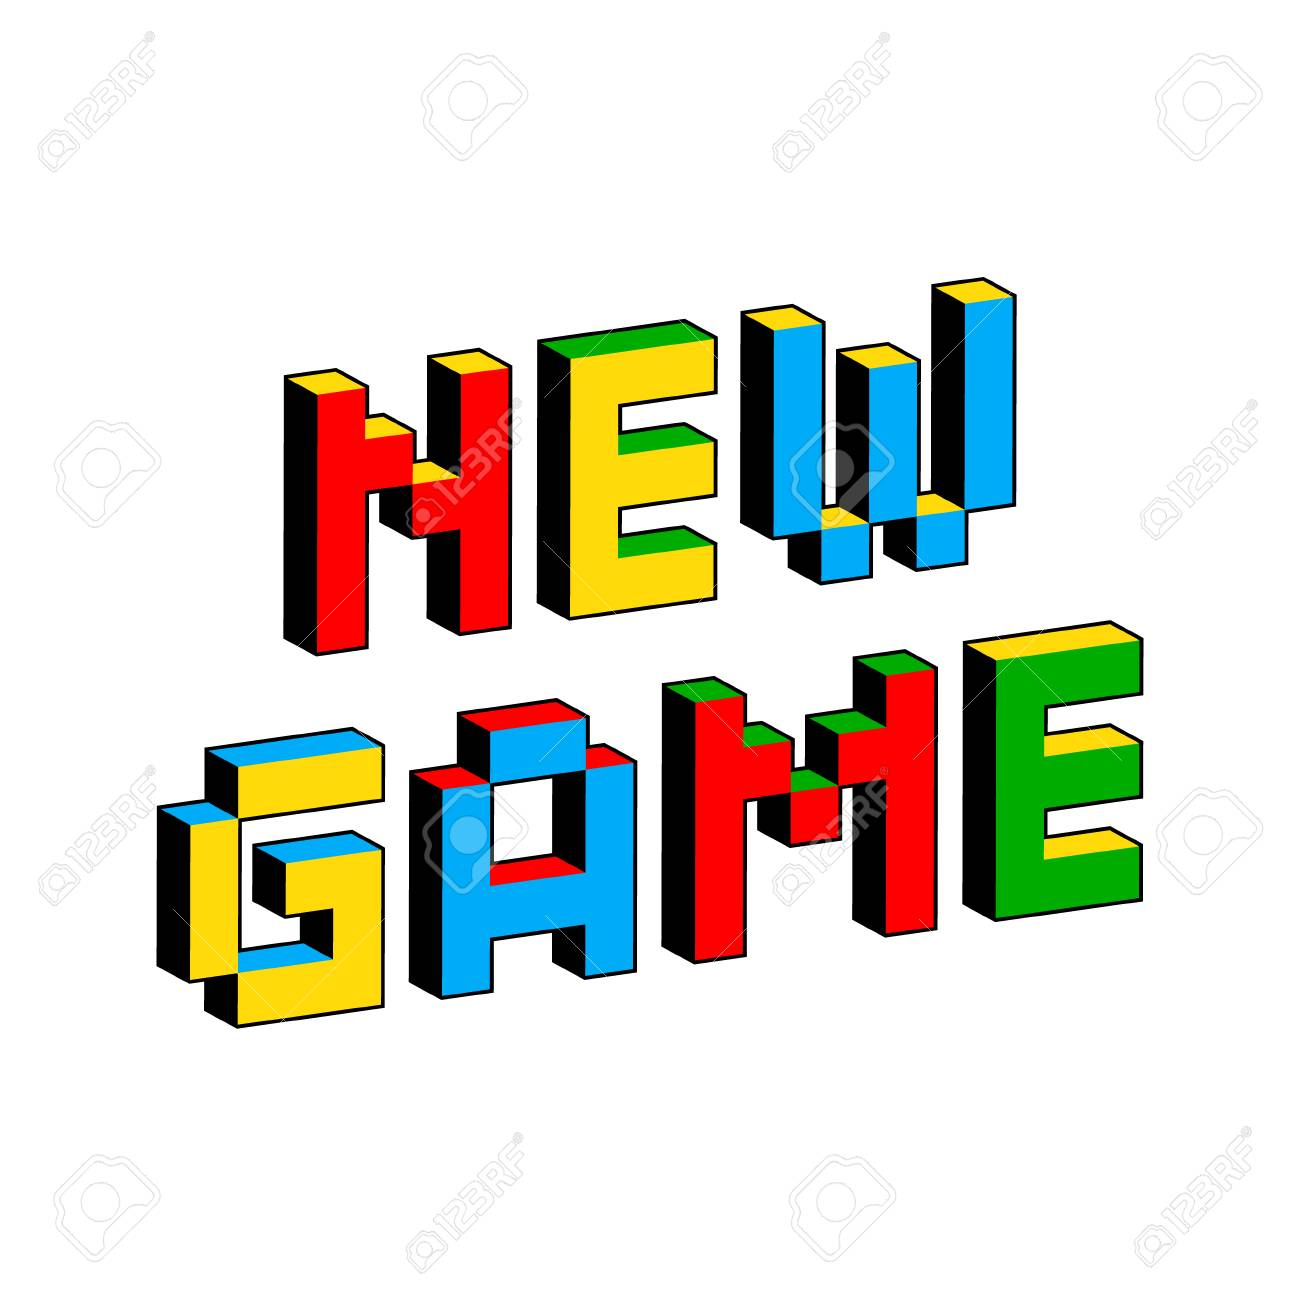 New Game text in style of old 8-bit video games  Vibrant colorful